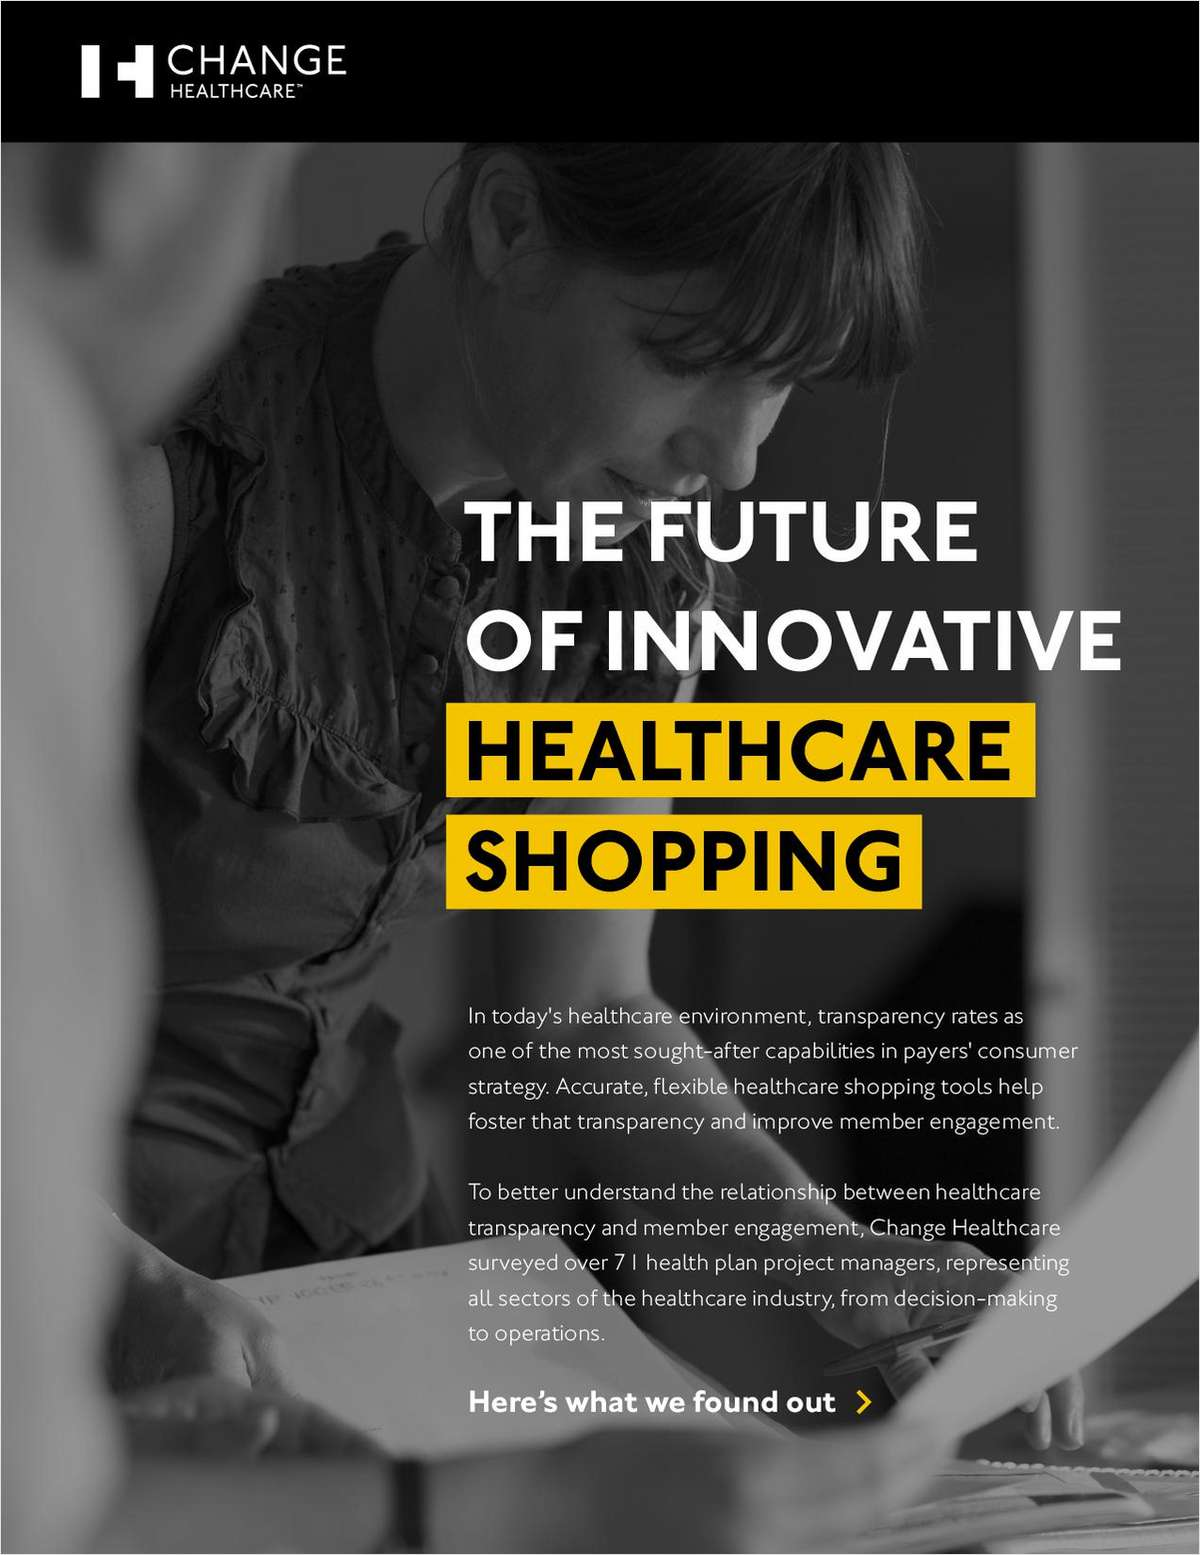 The Future of Innovative Healthcare Shopping